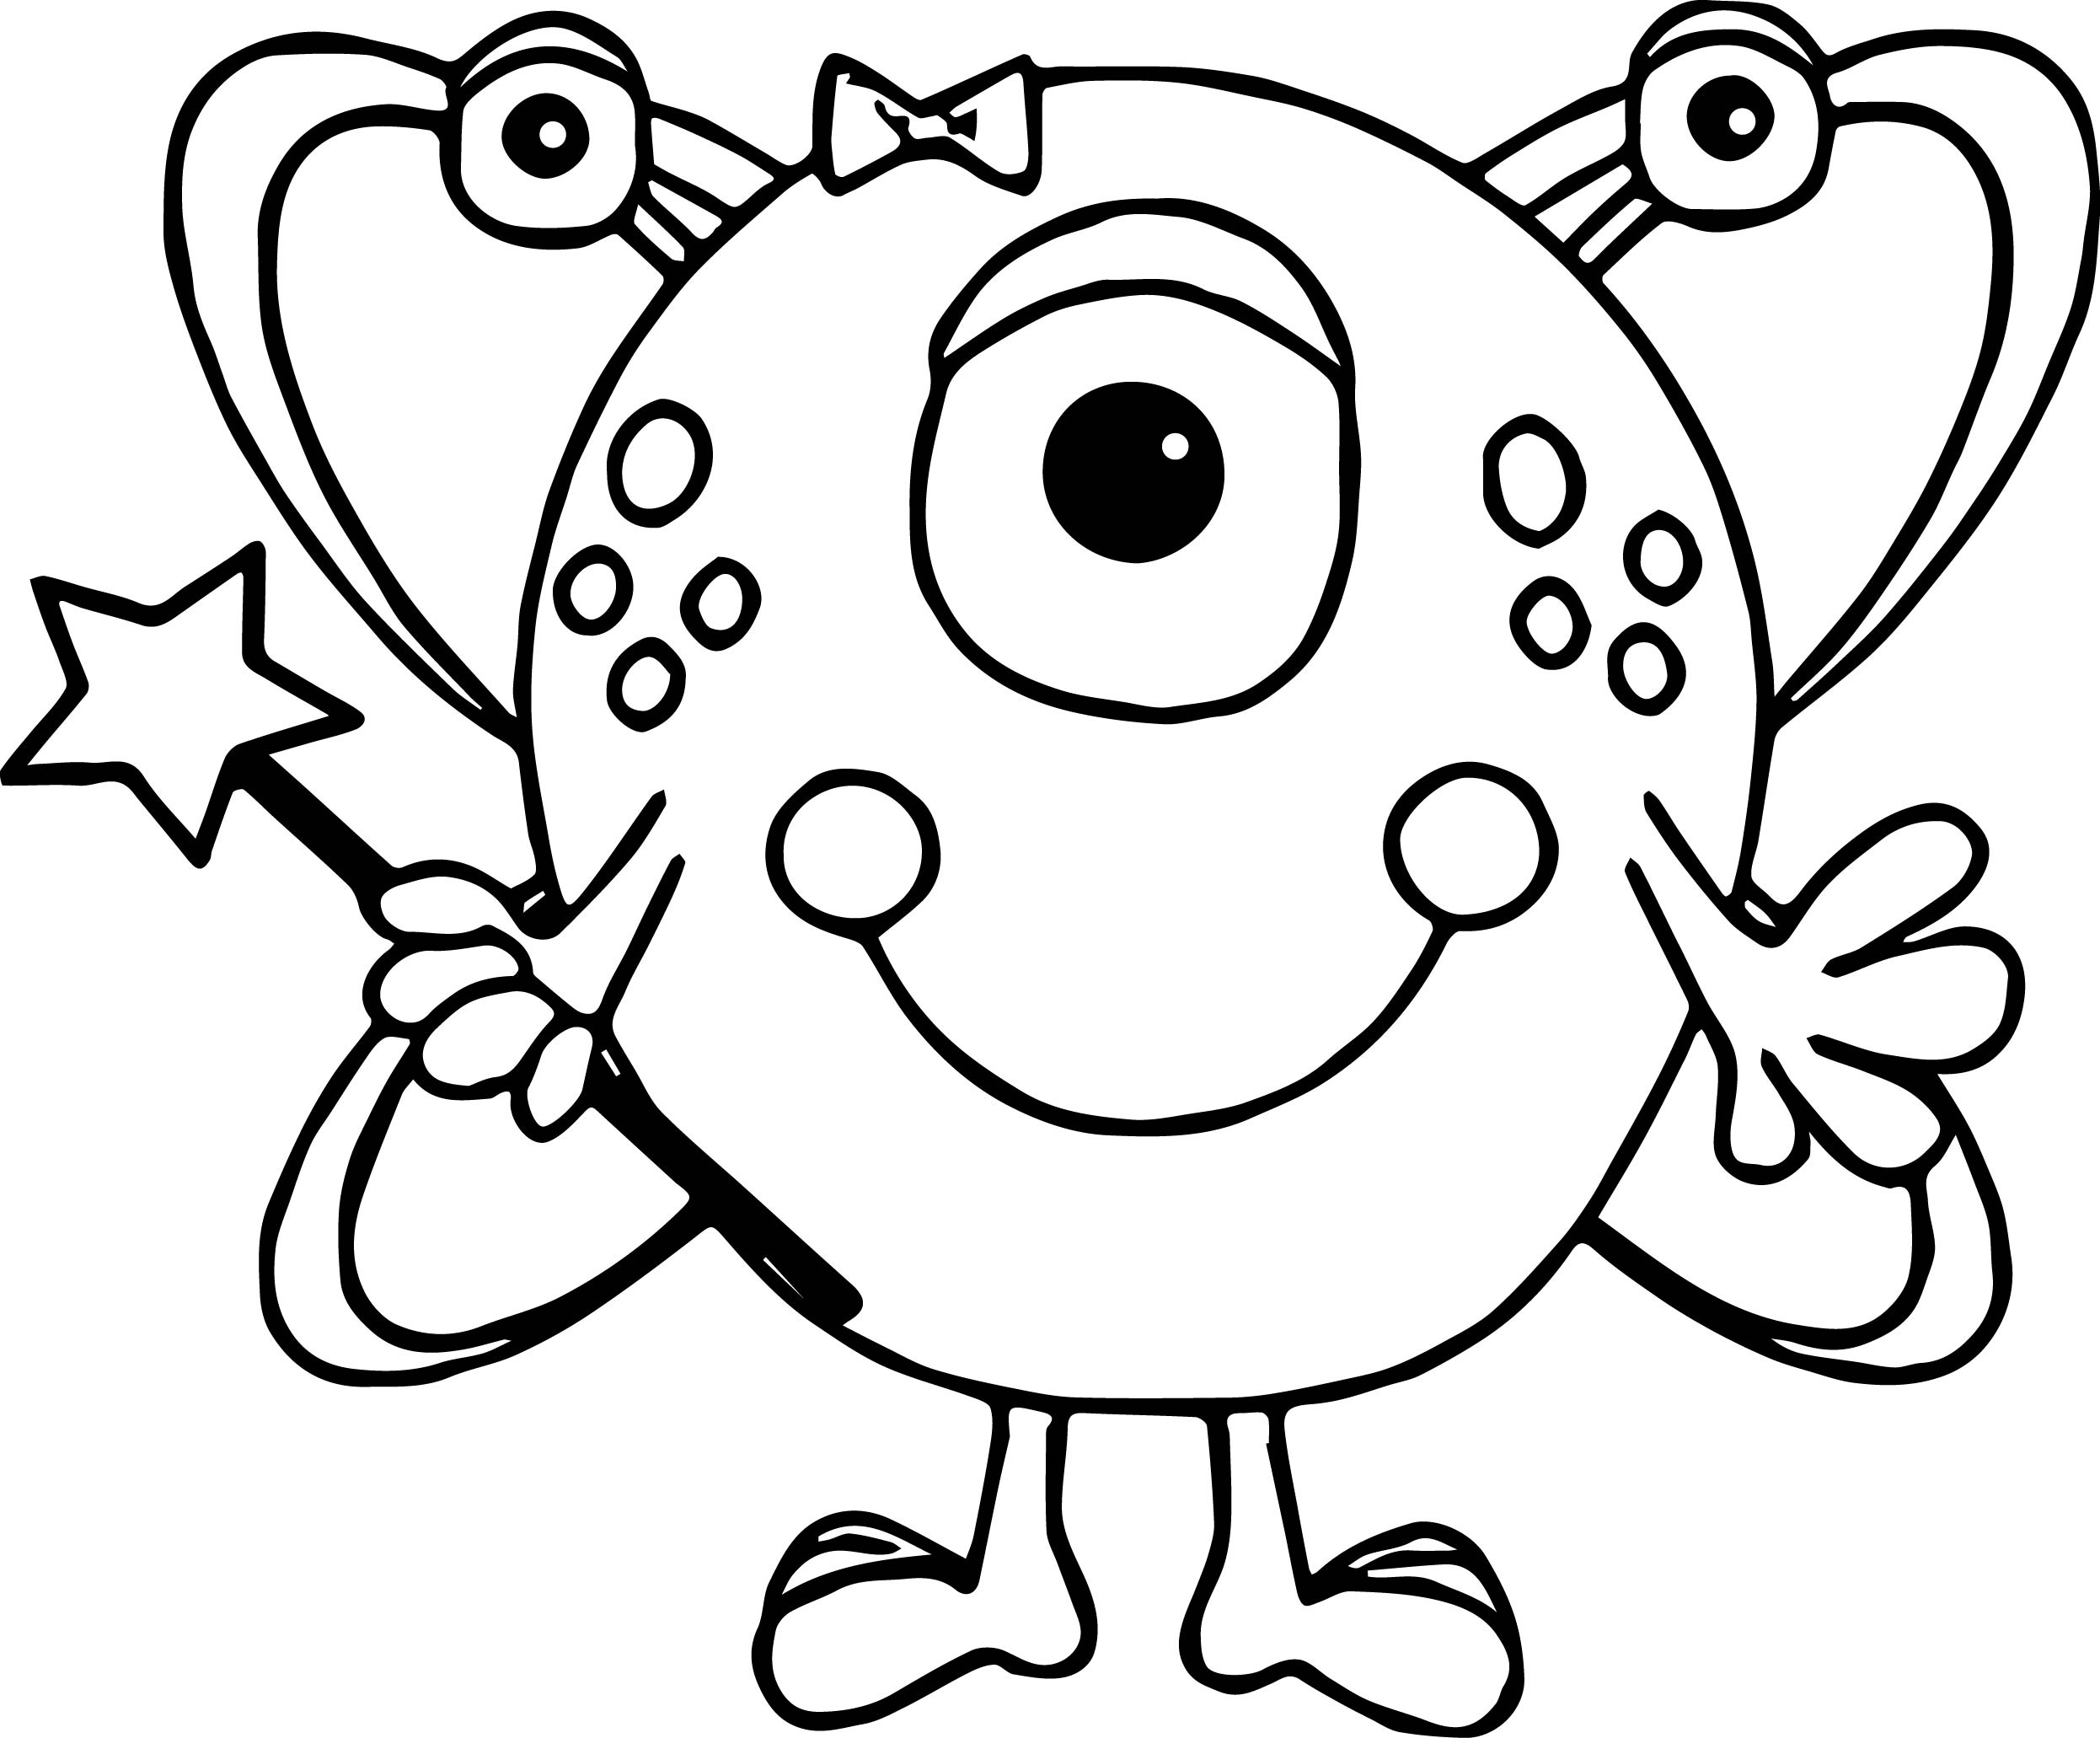 Cute Alien Coloring Pages - Costumepartyrun